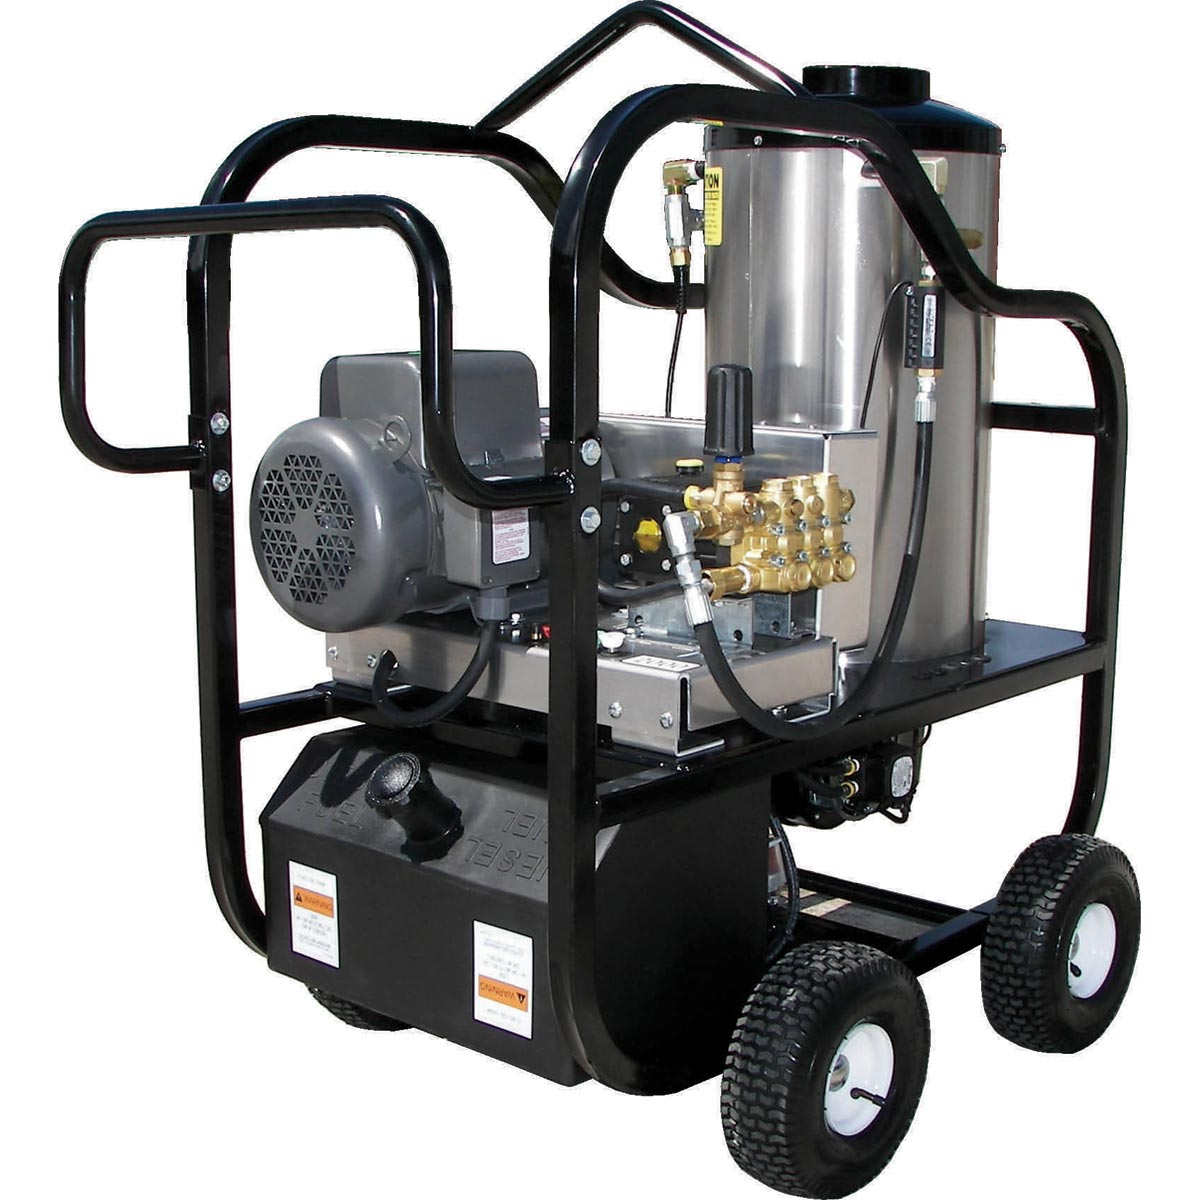 Pressure Pro 3230VB-25G1 3gpm 2500psi Electric Hot Pressure Washer With Portable Cart and Tank 5HP 25amp 230 volt